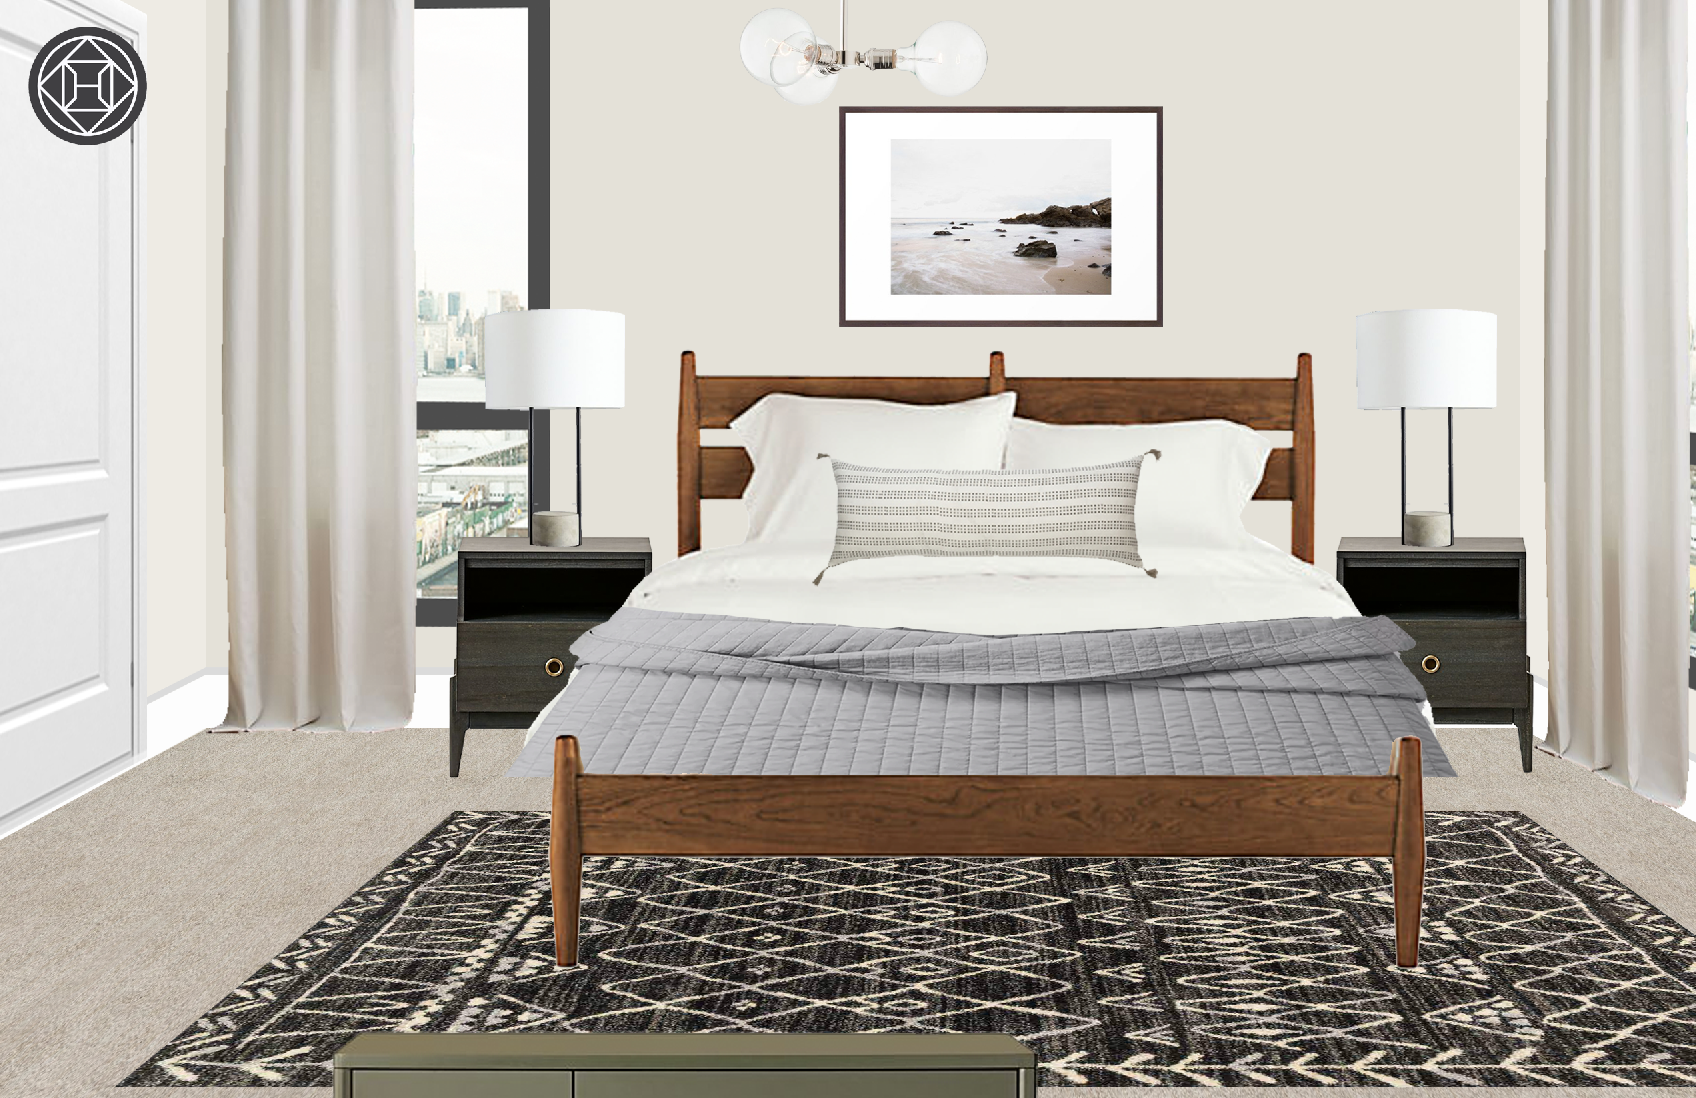 Contemporary Eclectic Midcentury Modern Bedroom Design By